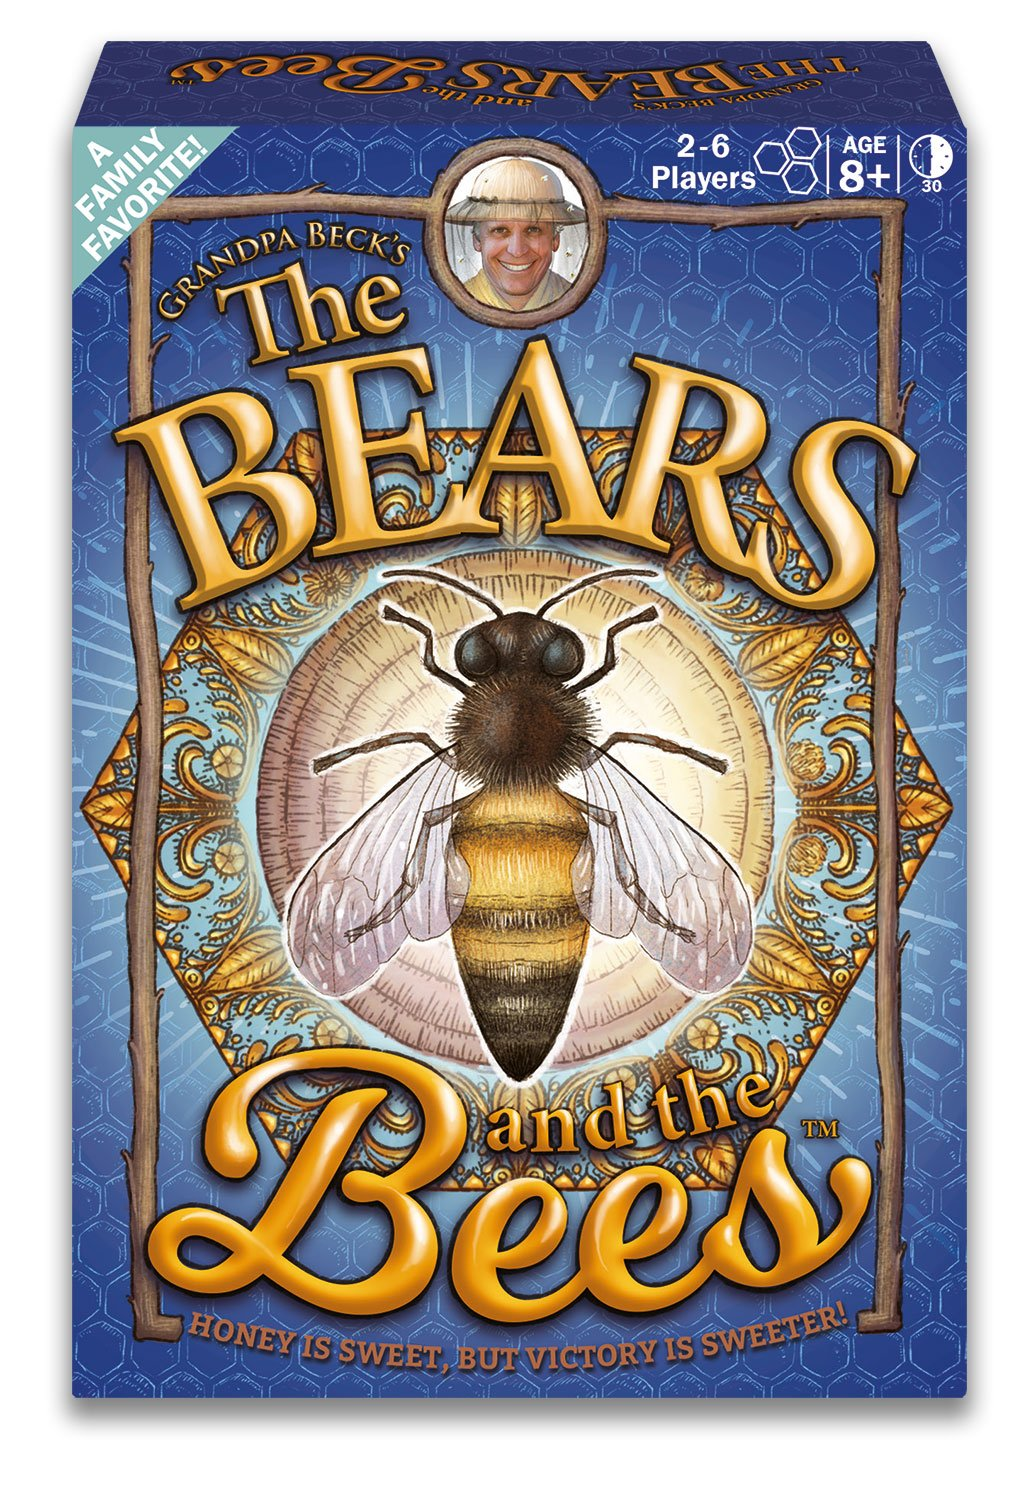 Grandpa Beck's The Bears And The Bees, a new game from the creators of Cover Your Assets